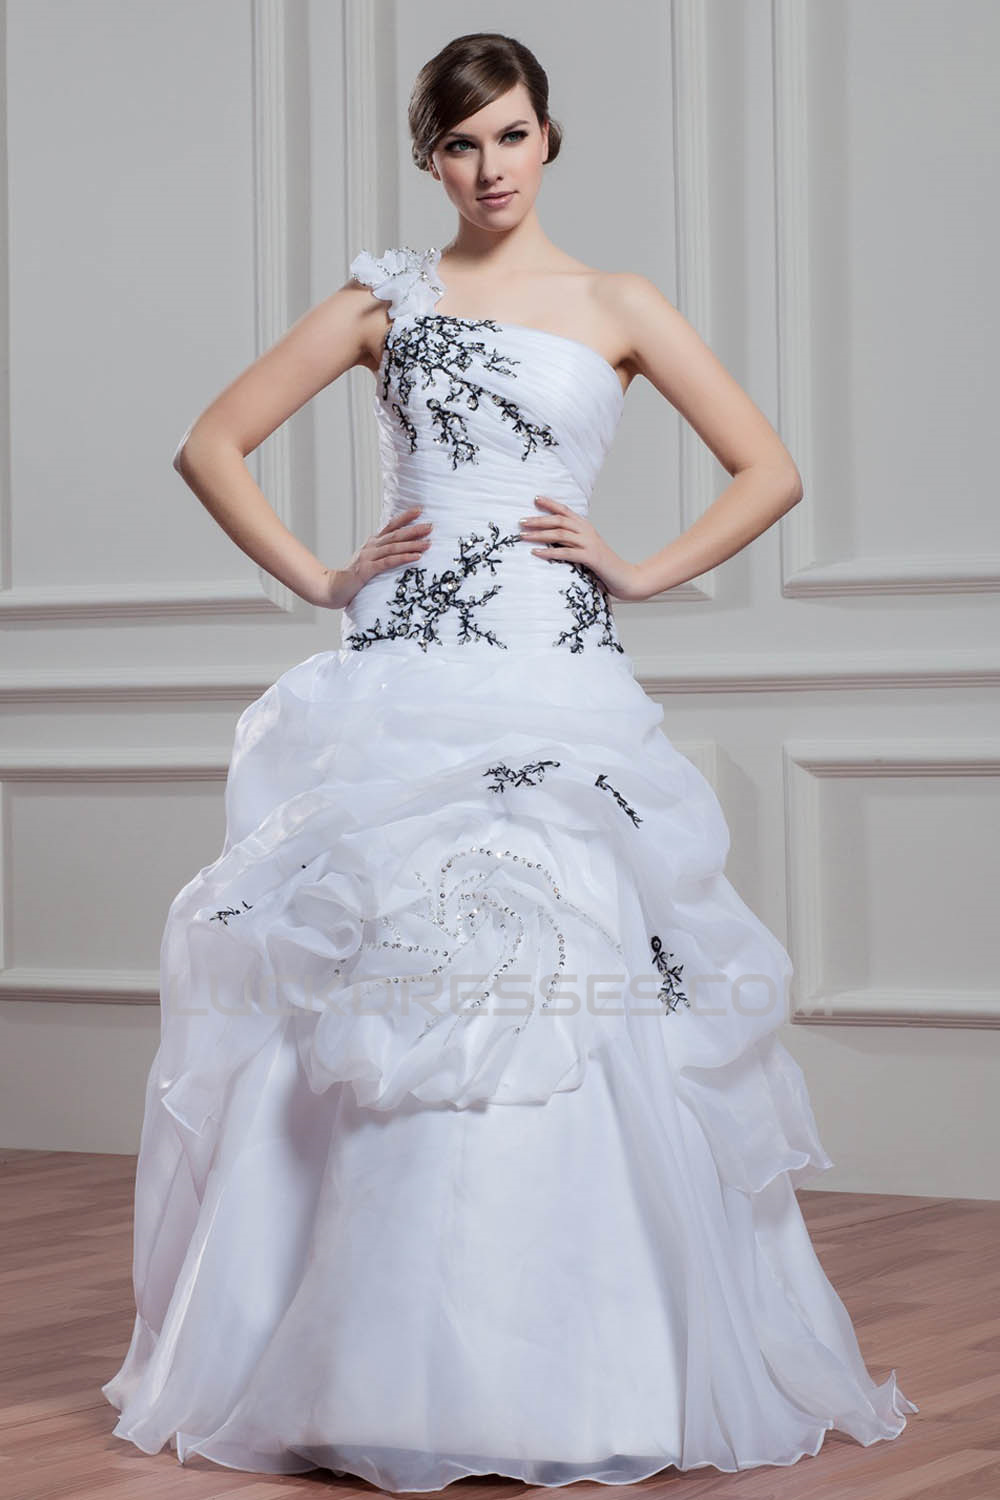 Satin Organza Ball Gown Sleeveless One-Shoulder Wedding Dresses 2030861